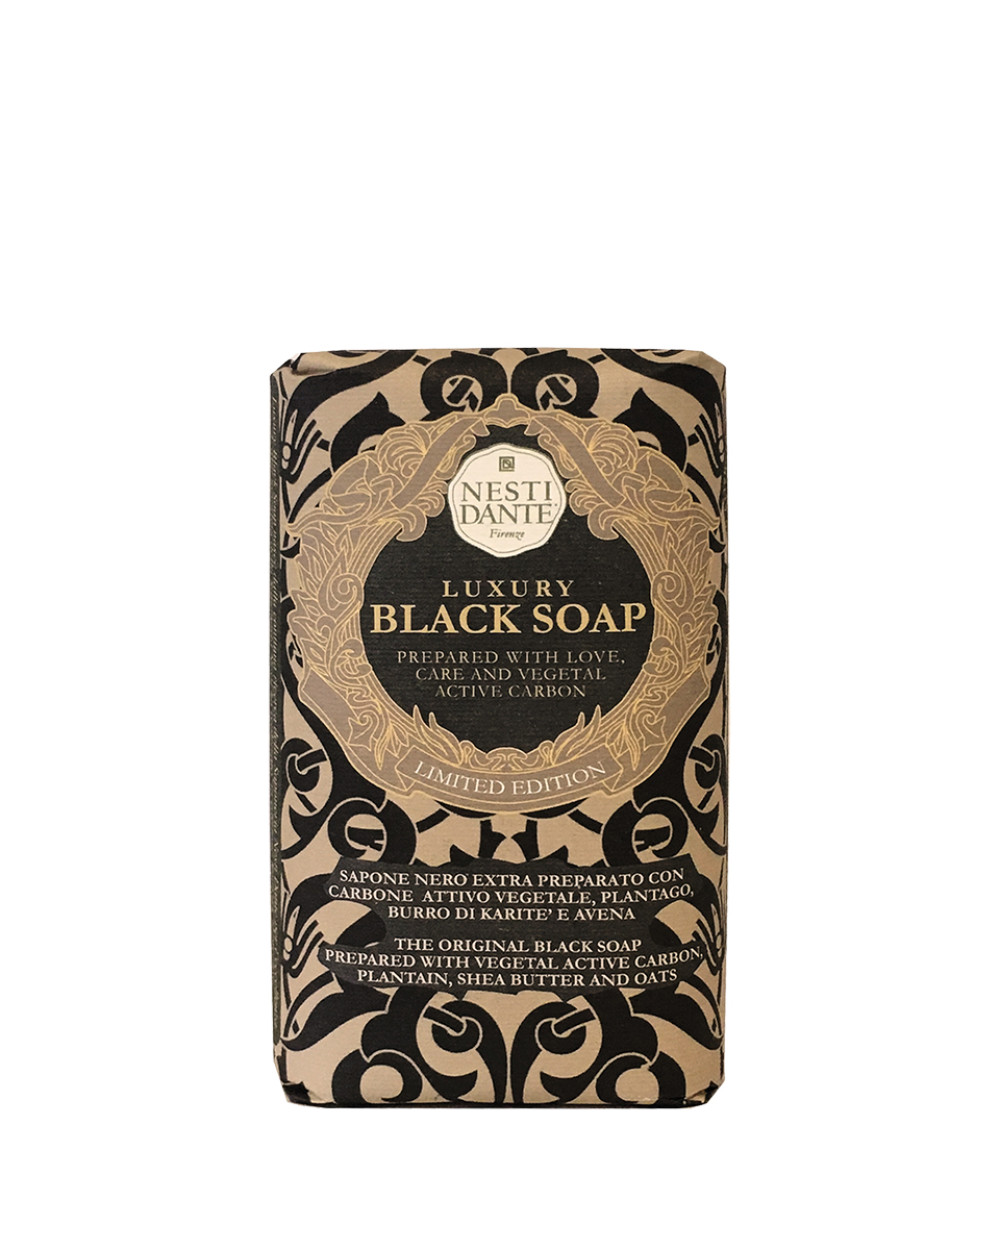 https://files.sirclocdn.xyz/kaycollection/products/_180504105130_BLACK%20SOAP%20250g_zoom.jpg